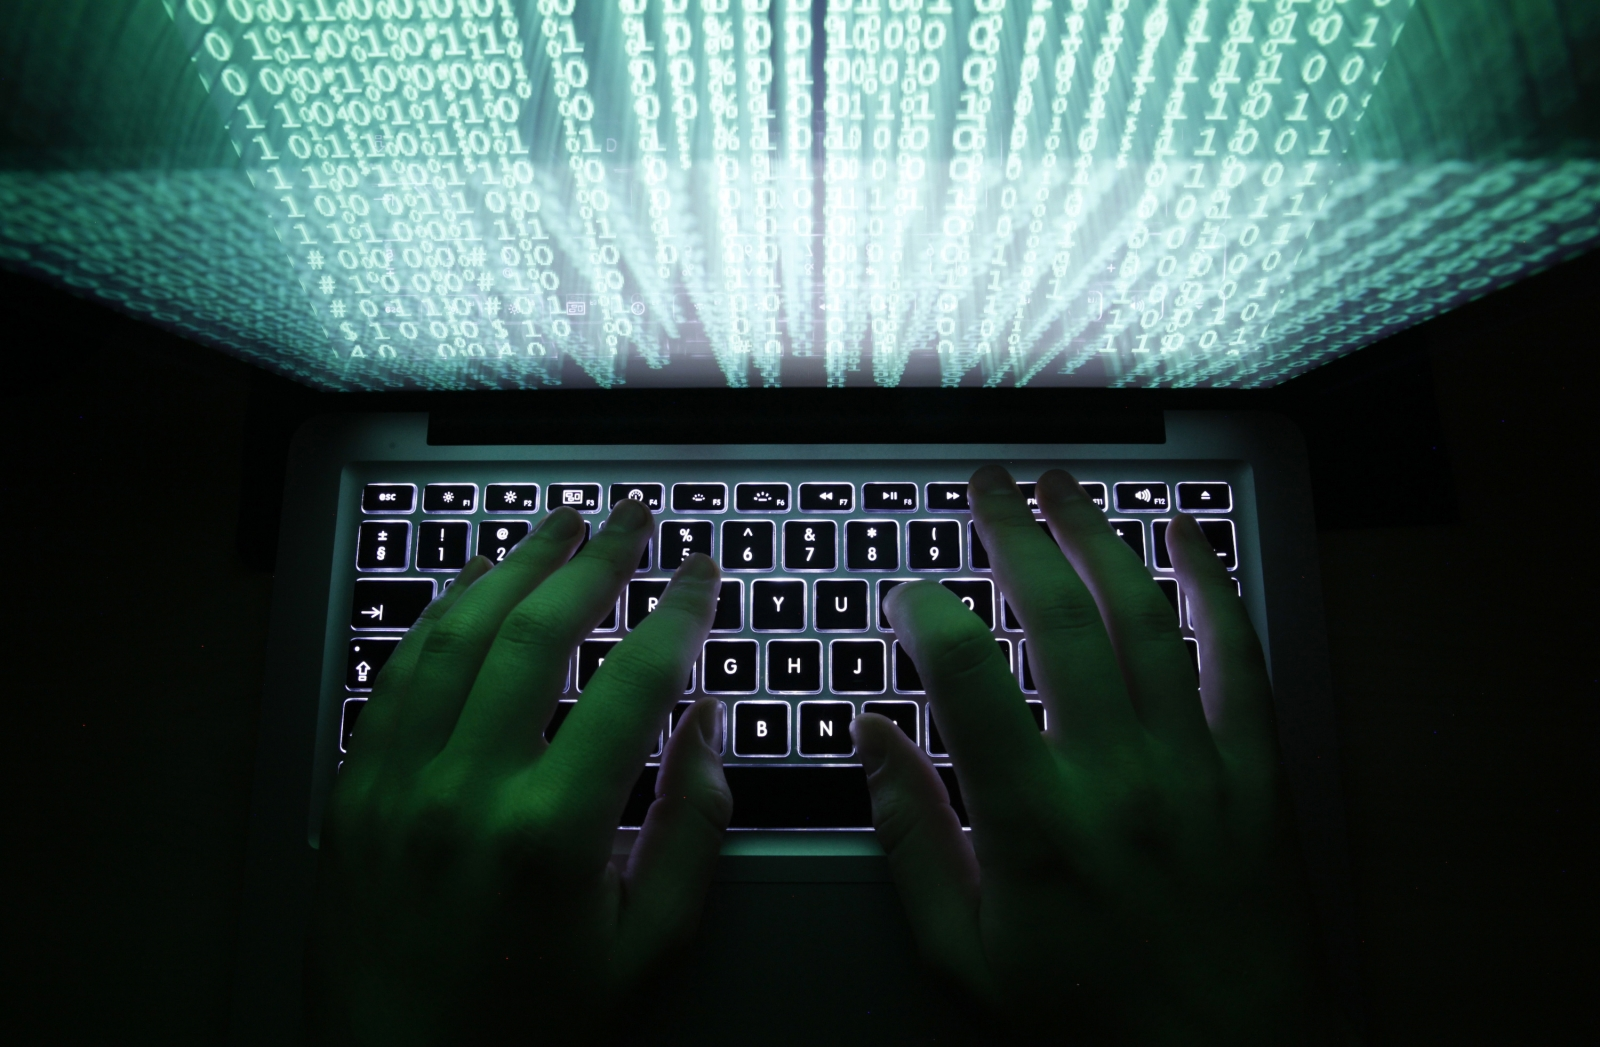 Russian hackers broke into US electricity grid as part of Grizzly Steppe campaign - report